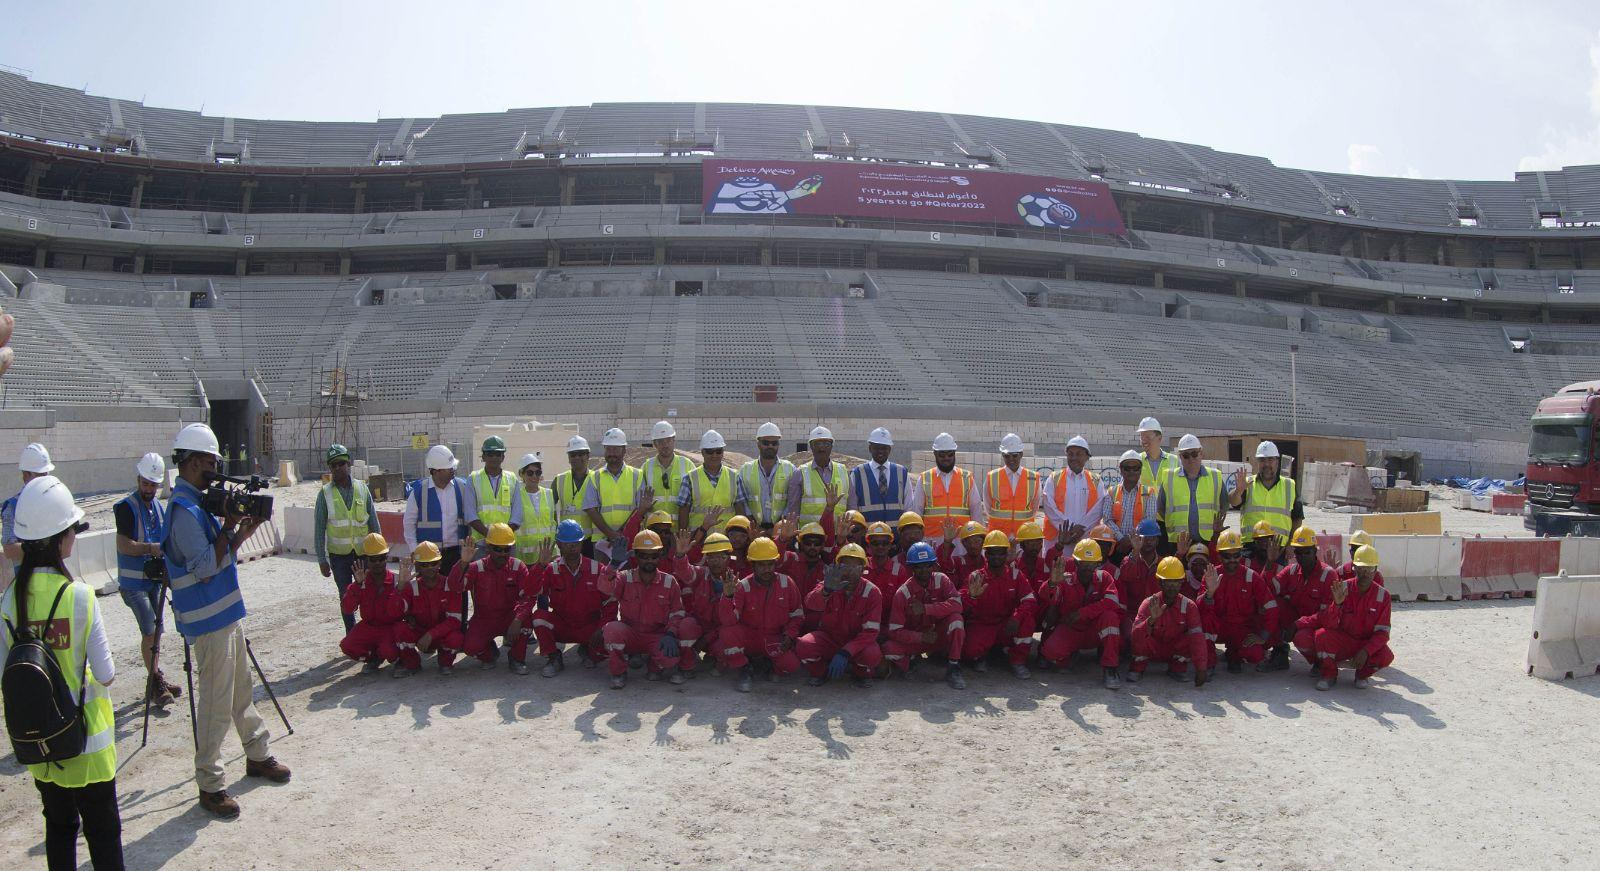 qatar fifa world cup The 22nd edition of the fifa world cup is scheduled to take place in qatar it will be the first time football's biggest tournament will be held in the middle east, and in an arab and a muslim .